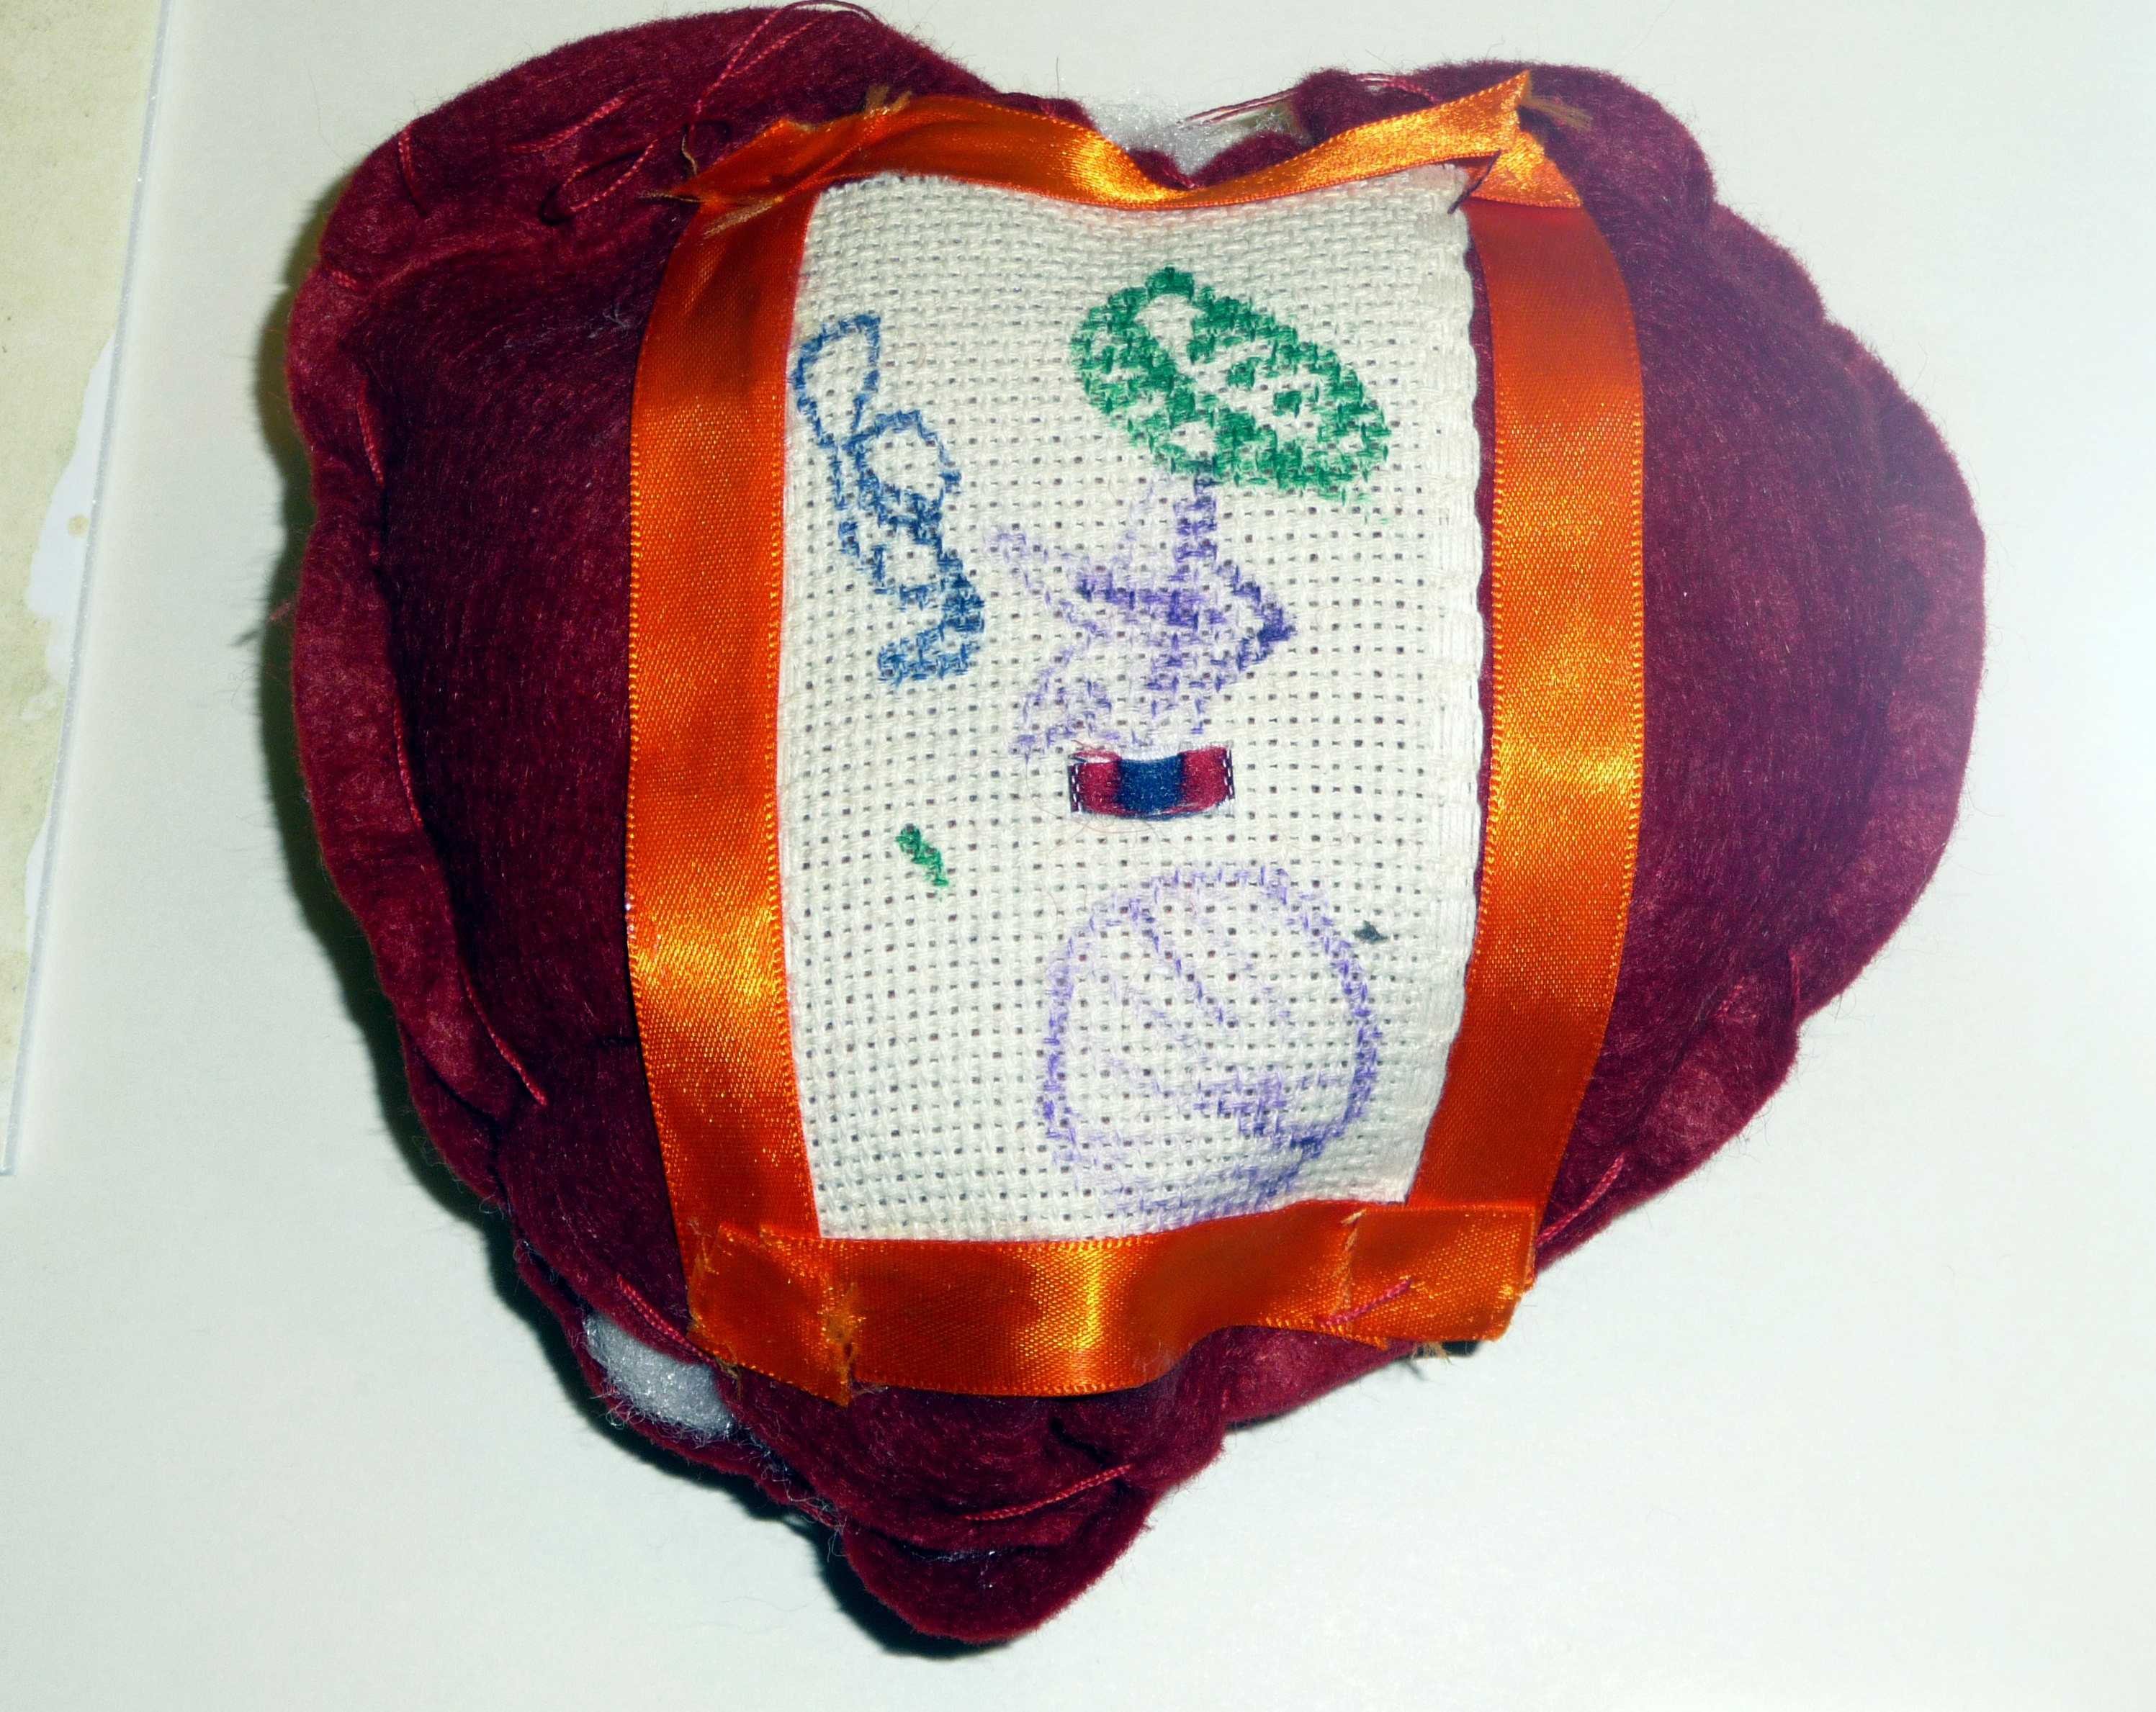 pincushion to commemorate World War 1 made by Jack Hopkins from Lansbury Bridge School, St Helens